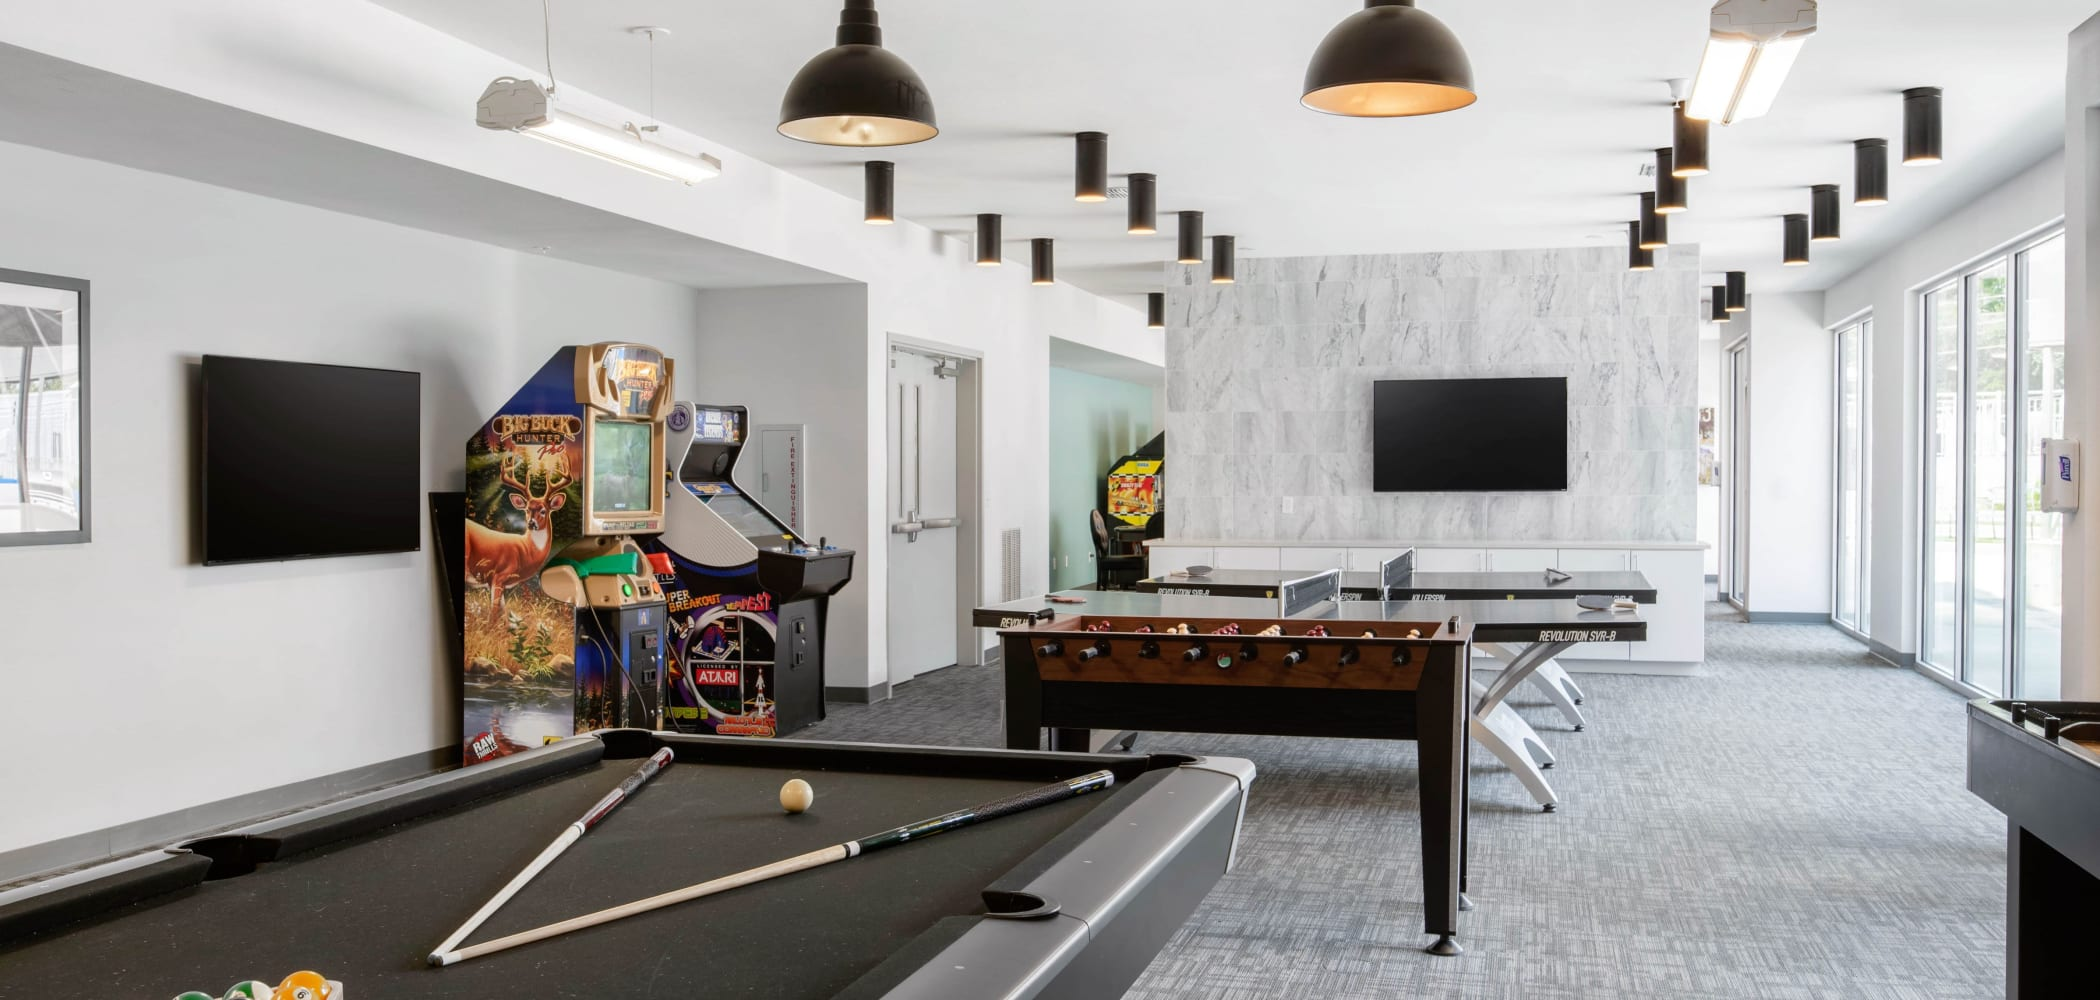 Game room at Onyx in Tallahassee, Florida